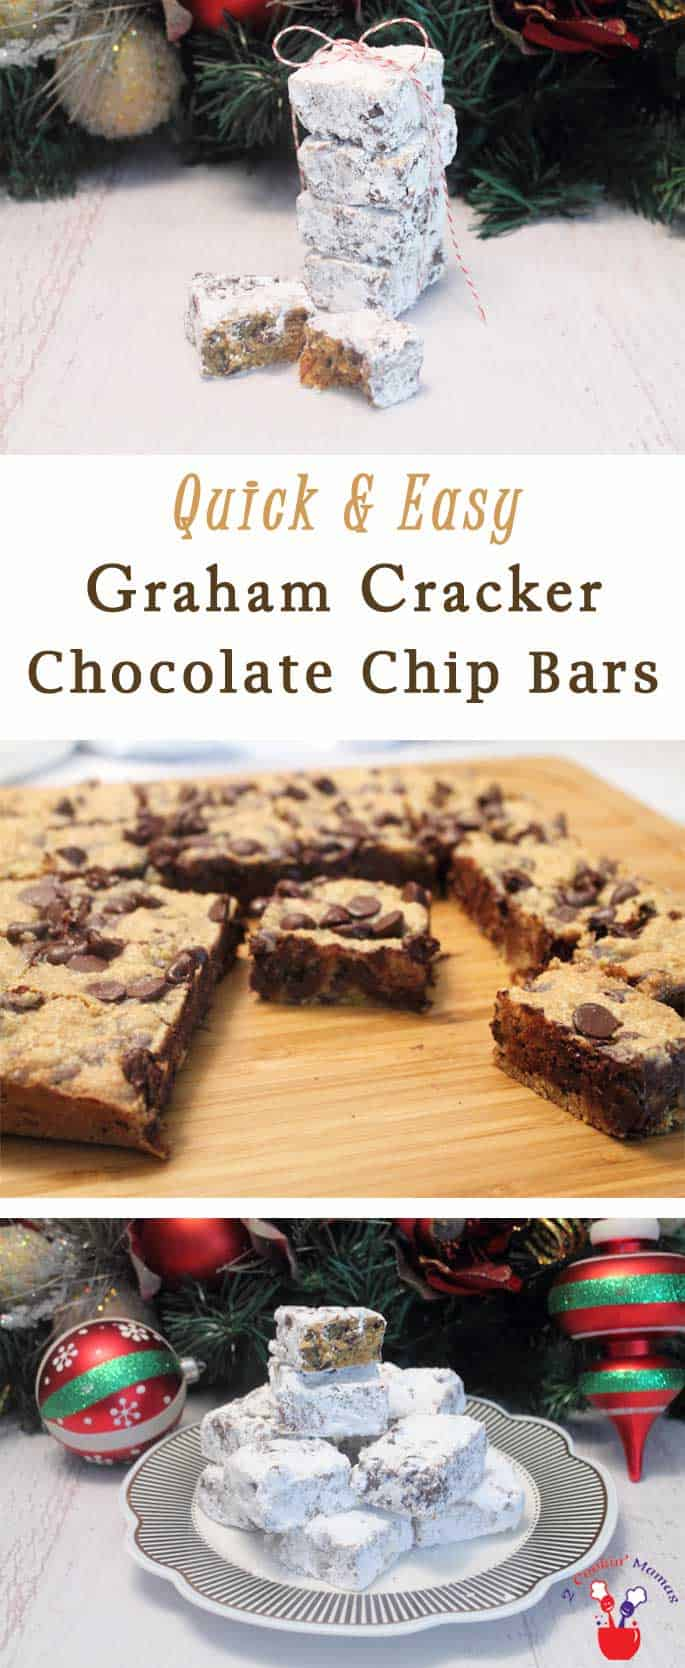 Graham Cracker Chocolate Chip Bars | 2 Cookin Mamas 3-ingredient Graham Cracker Chocolate Chip Bars are the easiest most delicious bar cookies you could make for Christmas. Rich, decadent & always popular. #recipe